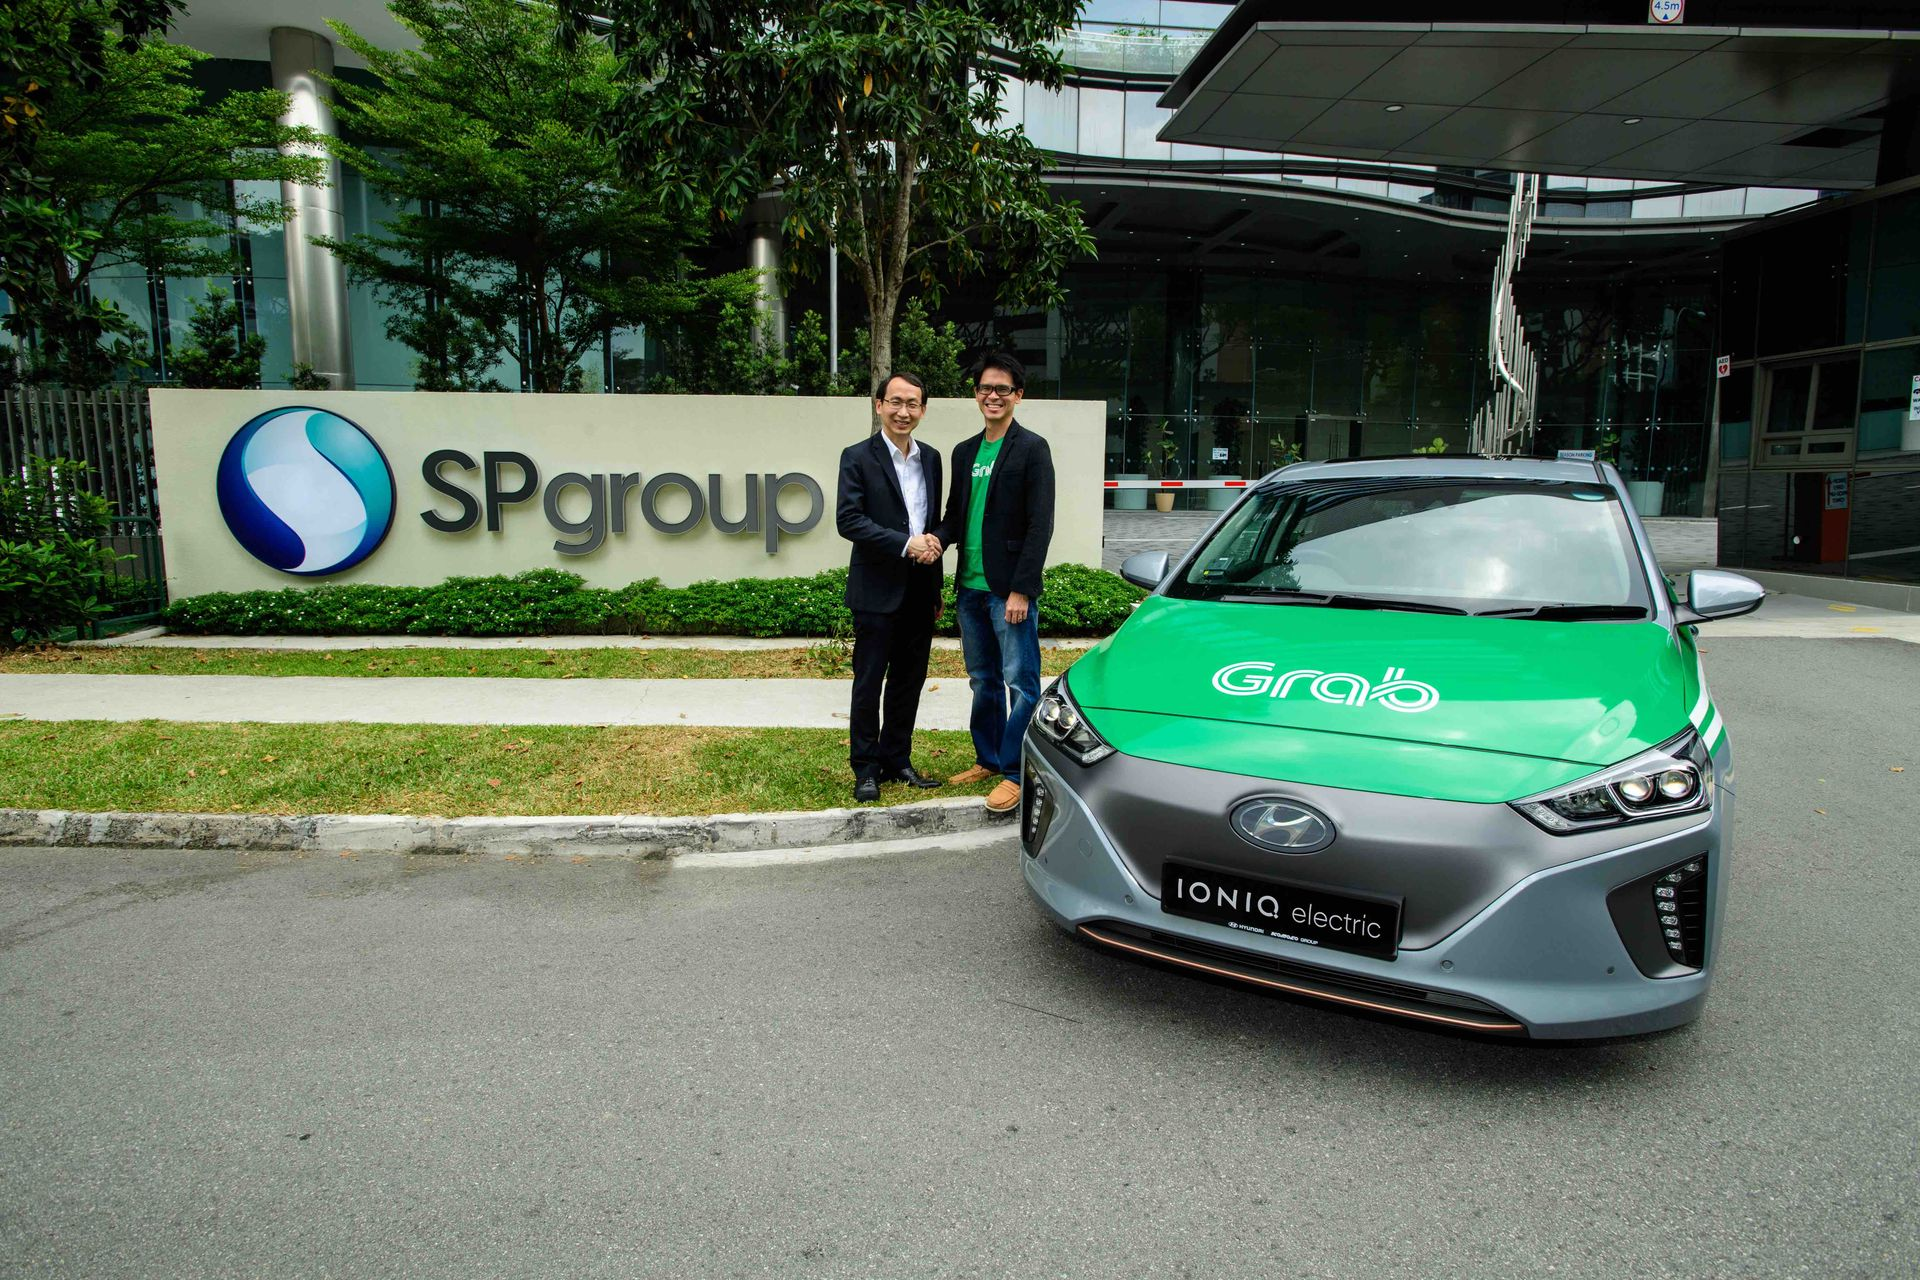 Photo-1_-Mr-Goh-Chee-Kiong-of-SP-Group-Mr-Lim-Kell-Jay-of-Grab-posing-with-a-100-electric-Hyundai-Ioniq-car